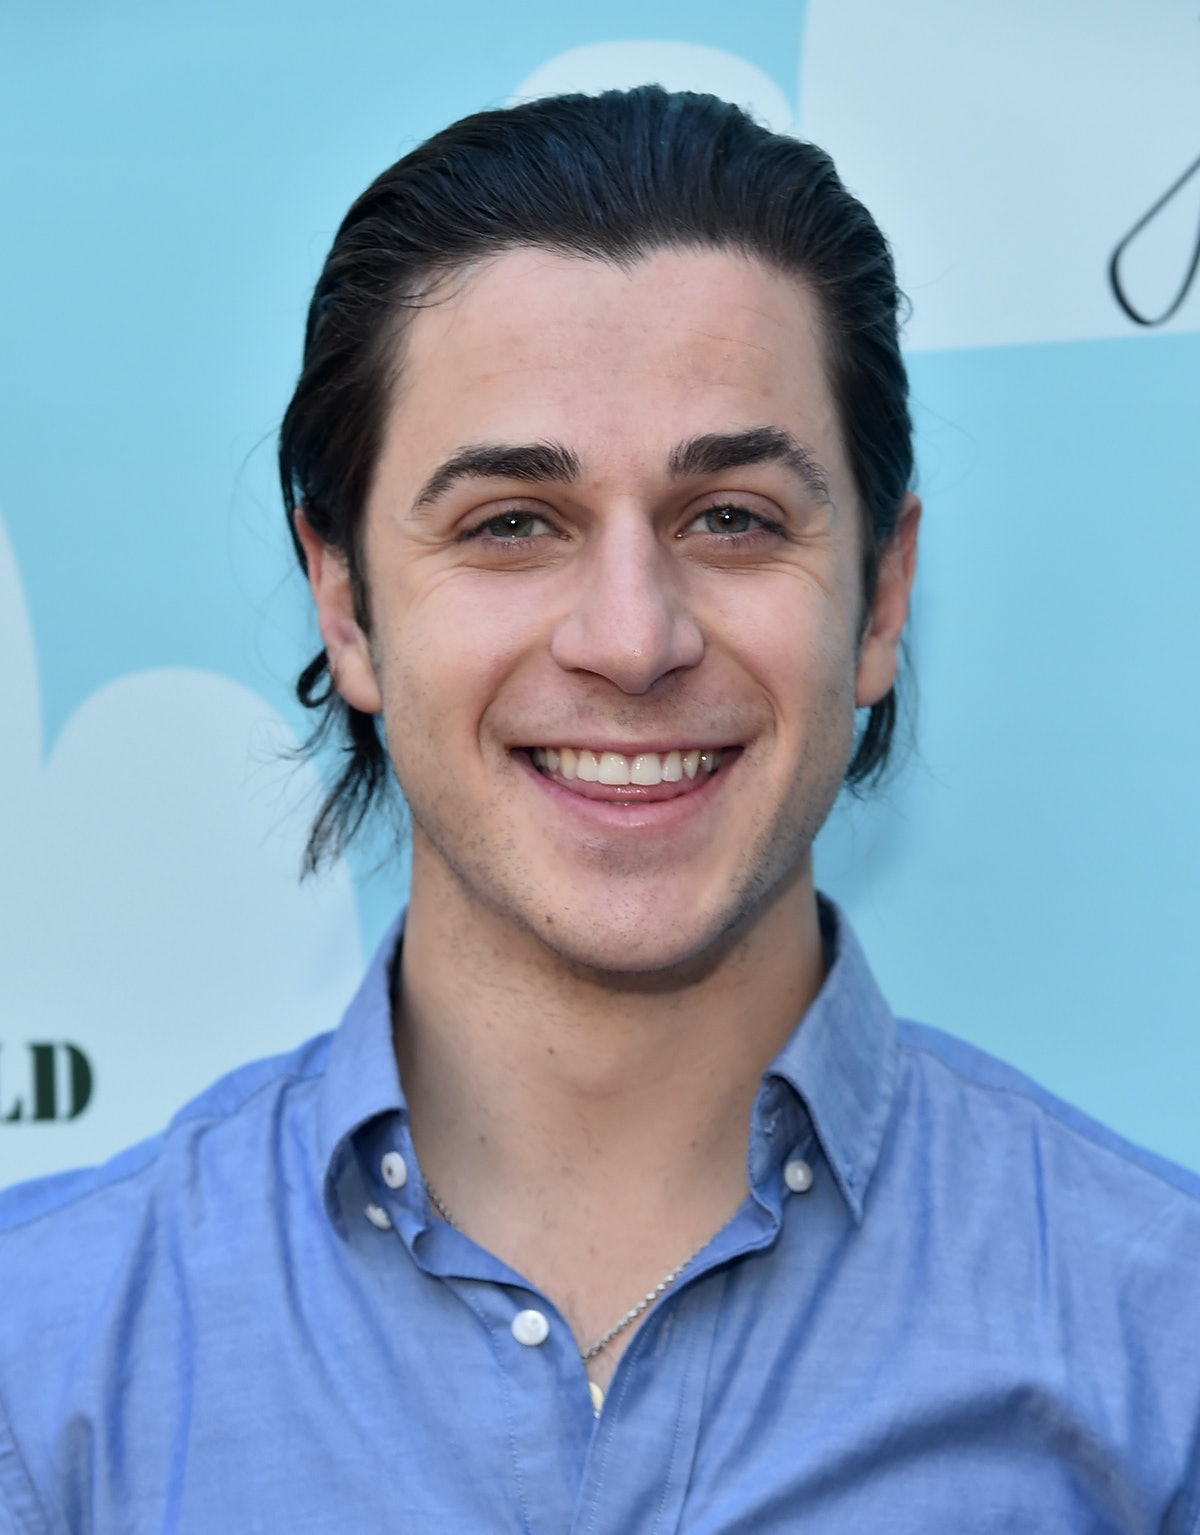 'Wizards Of Waverly Place' Star David Henrie Is A Dad Now & His Comments About Parenthood Are So Sweet